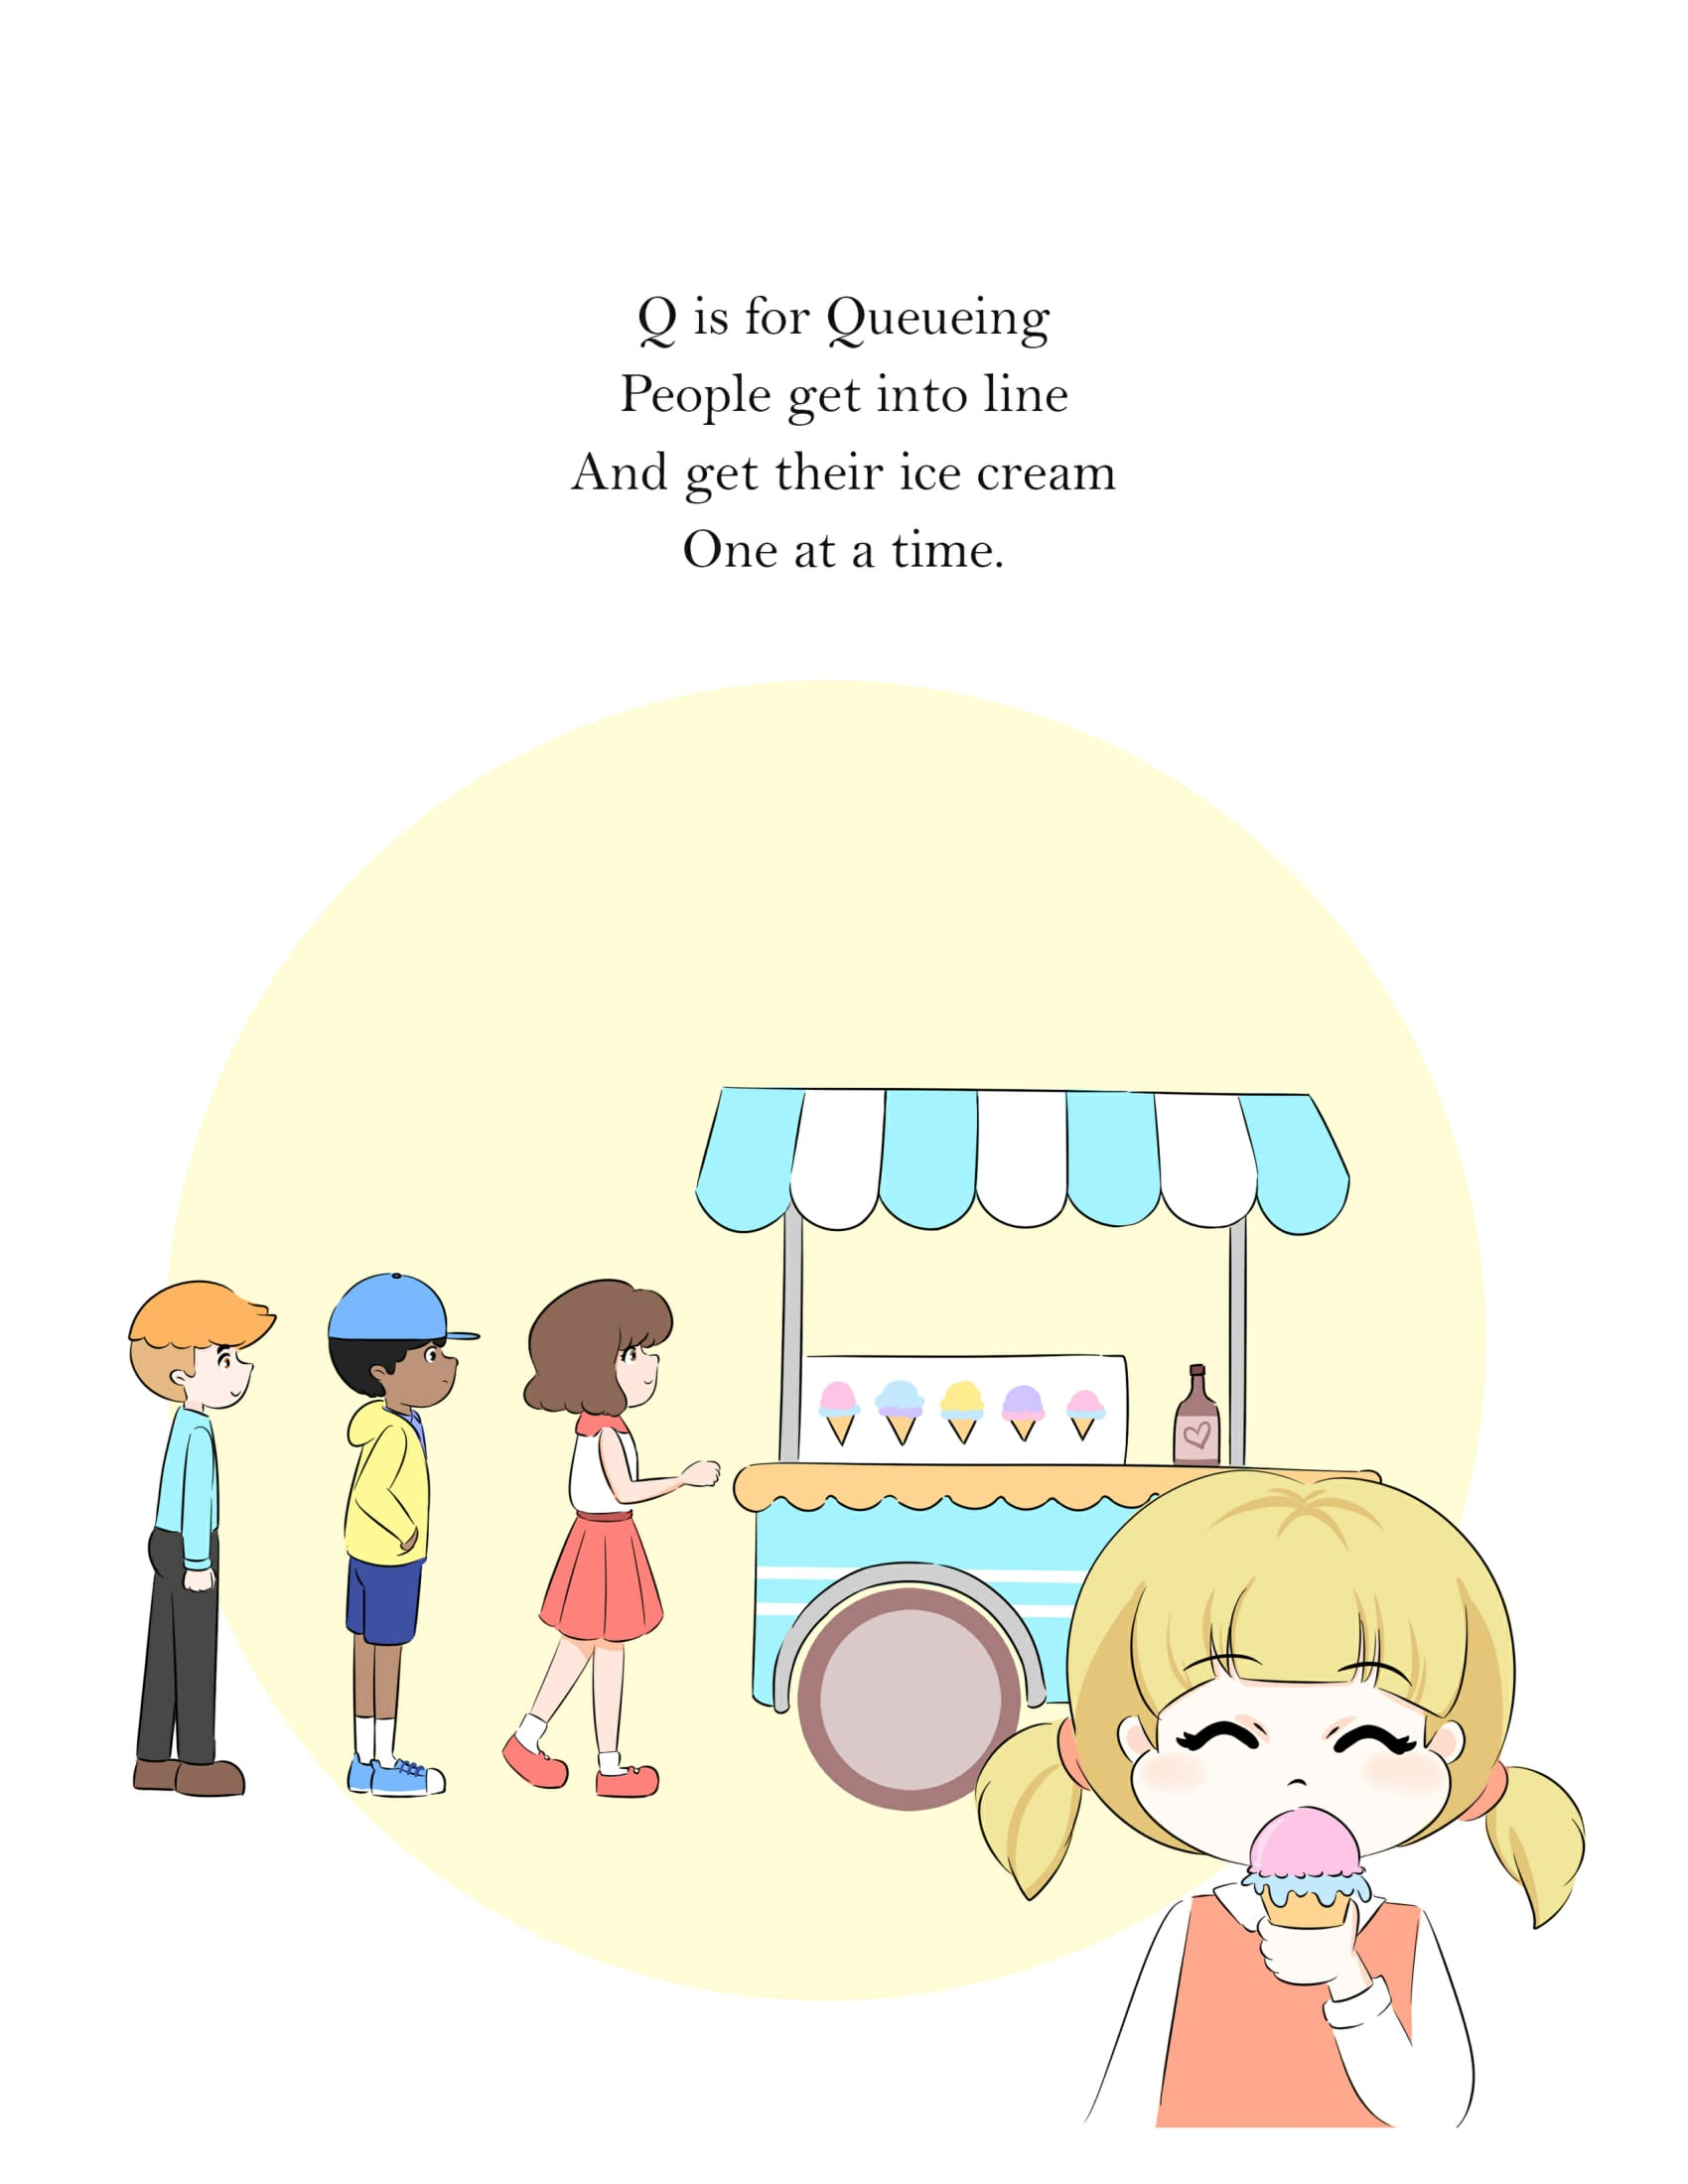 Q is for Queueing